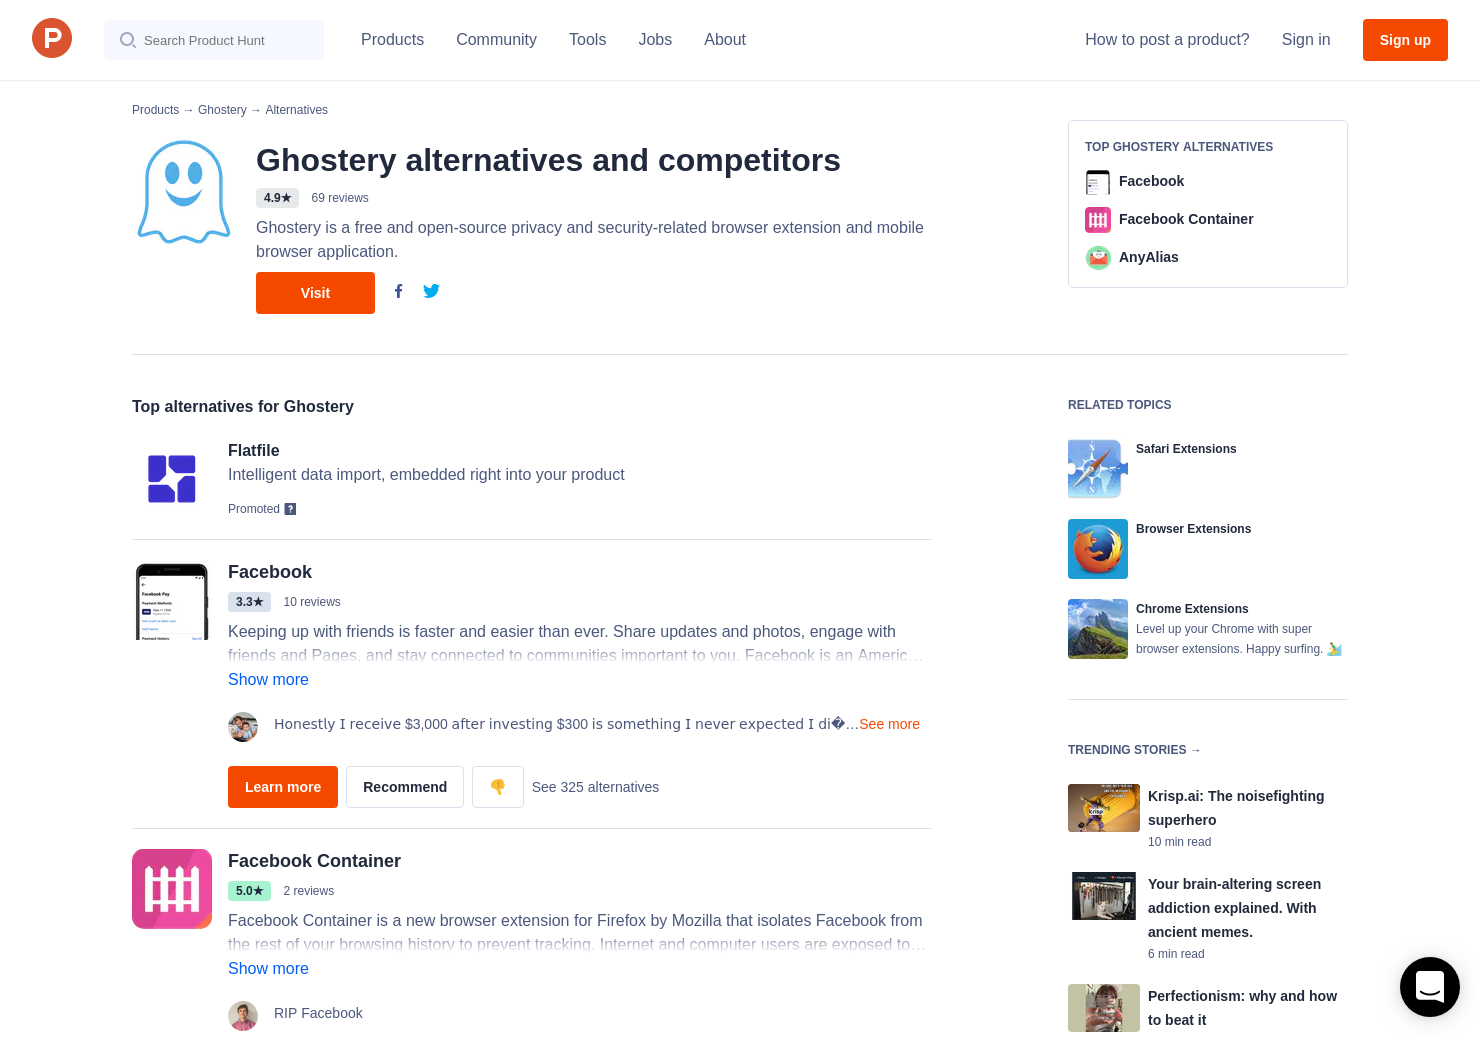 22 Alternatives to Ghostery 8 for Chrome Extensions